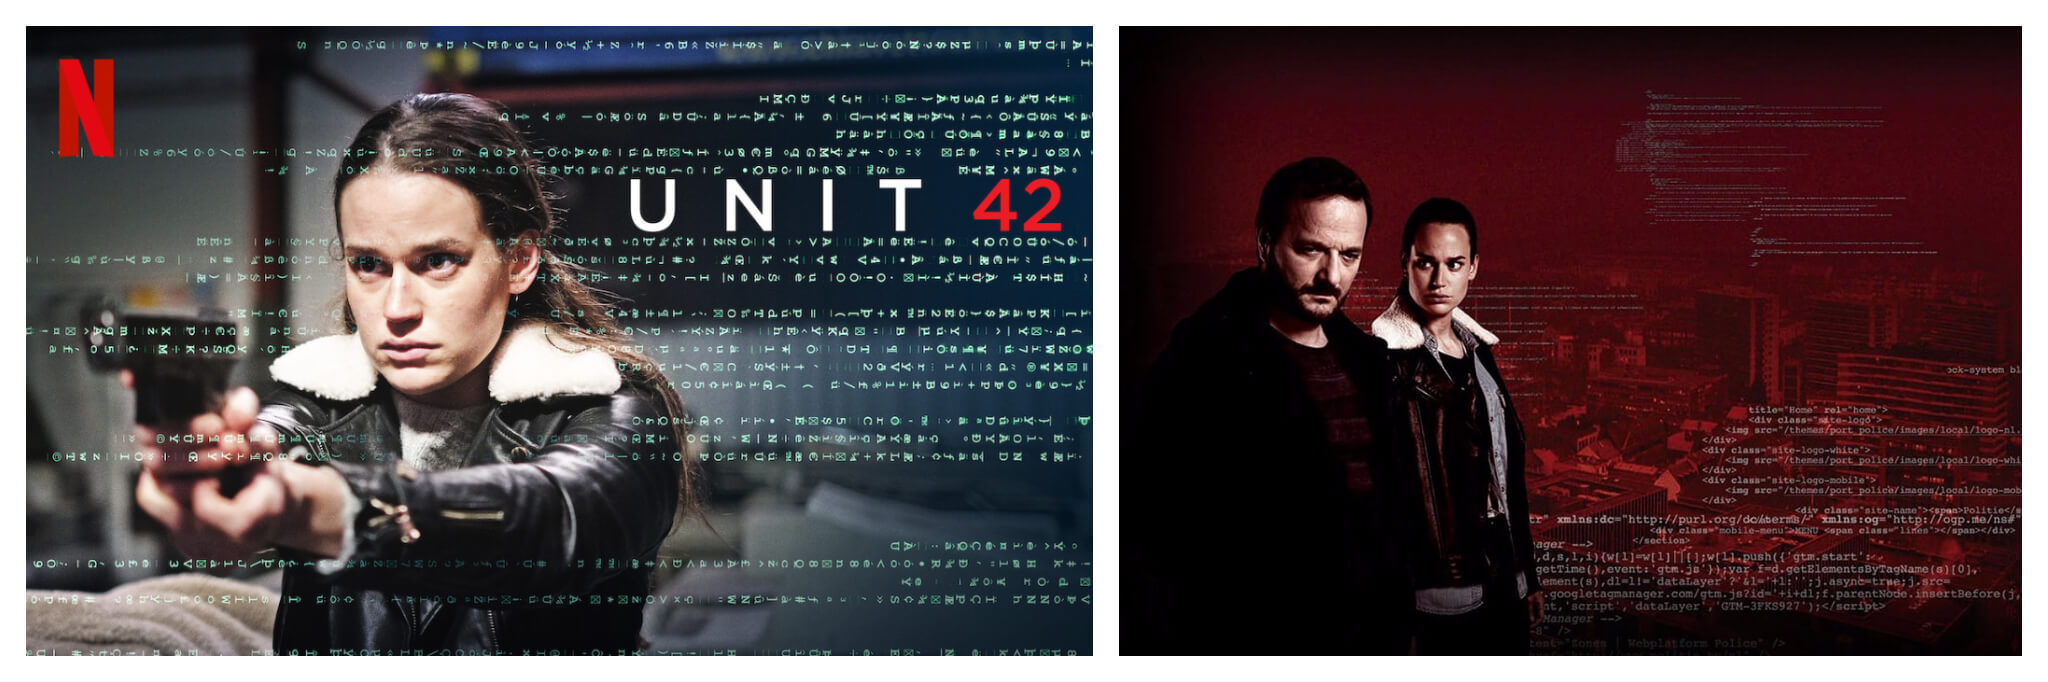 Left and right, posters for French Netflix series Unit 42 with the main character holding up a gun, and investigators looking into the camera.